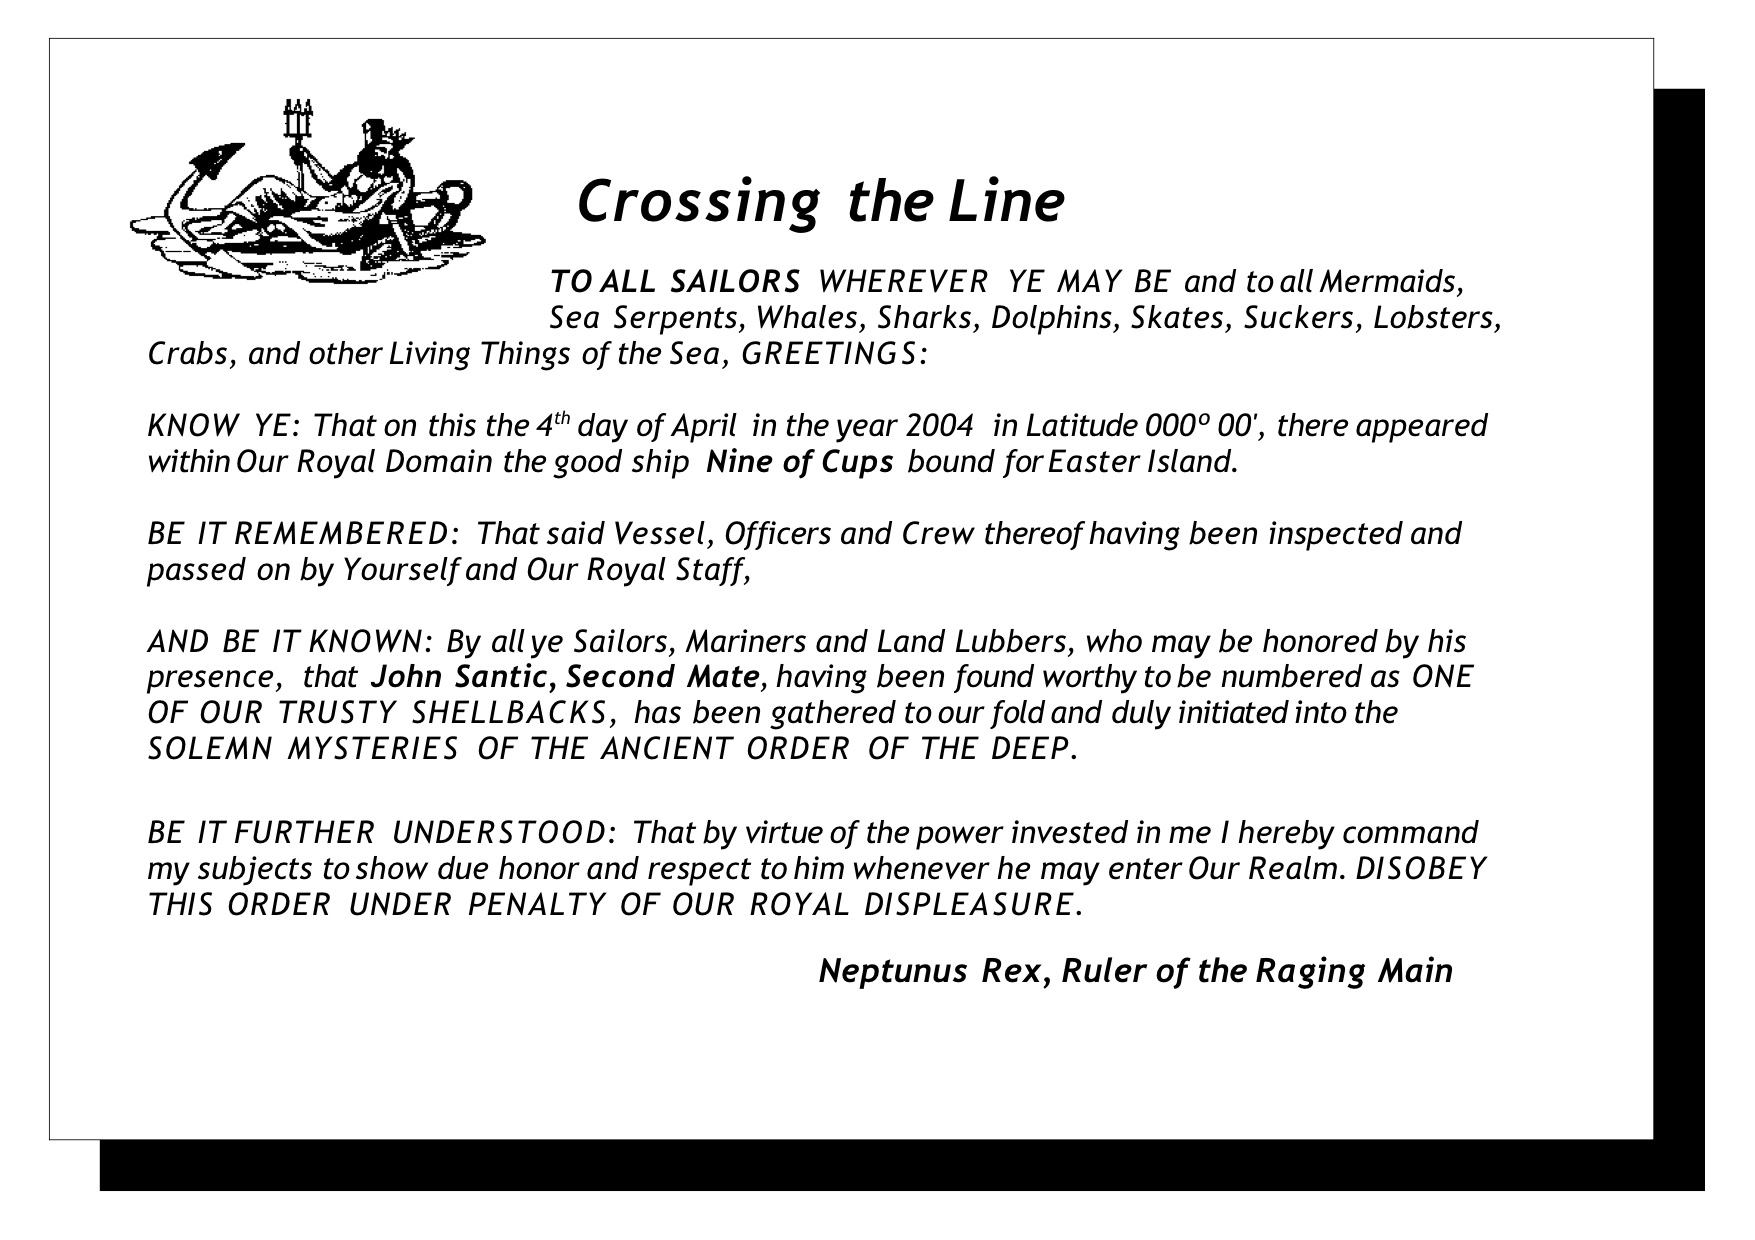 crossing the line certificate